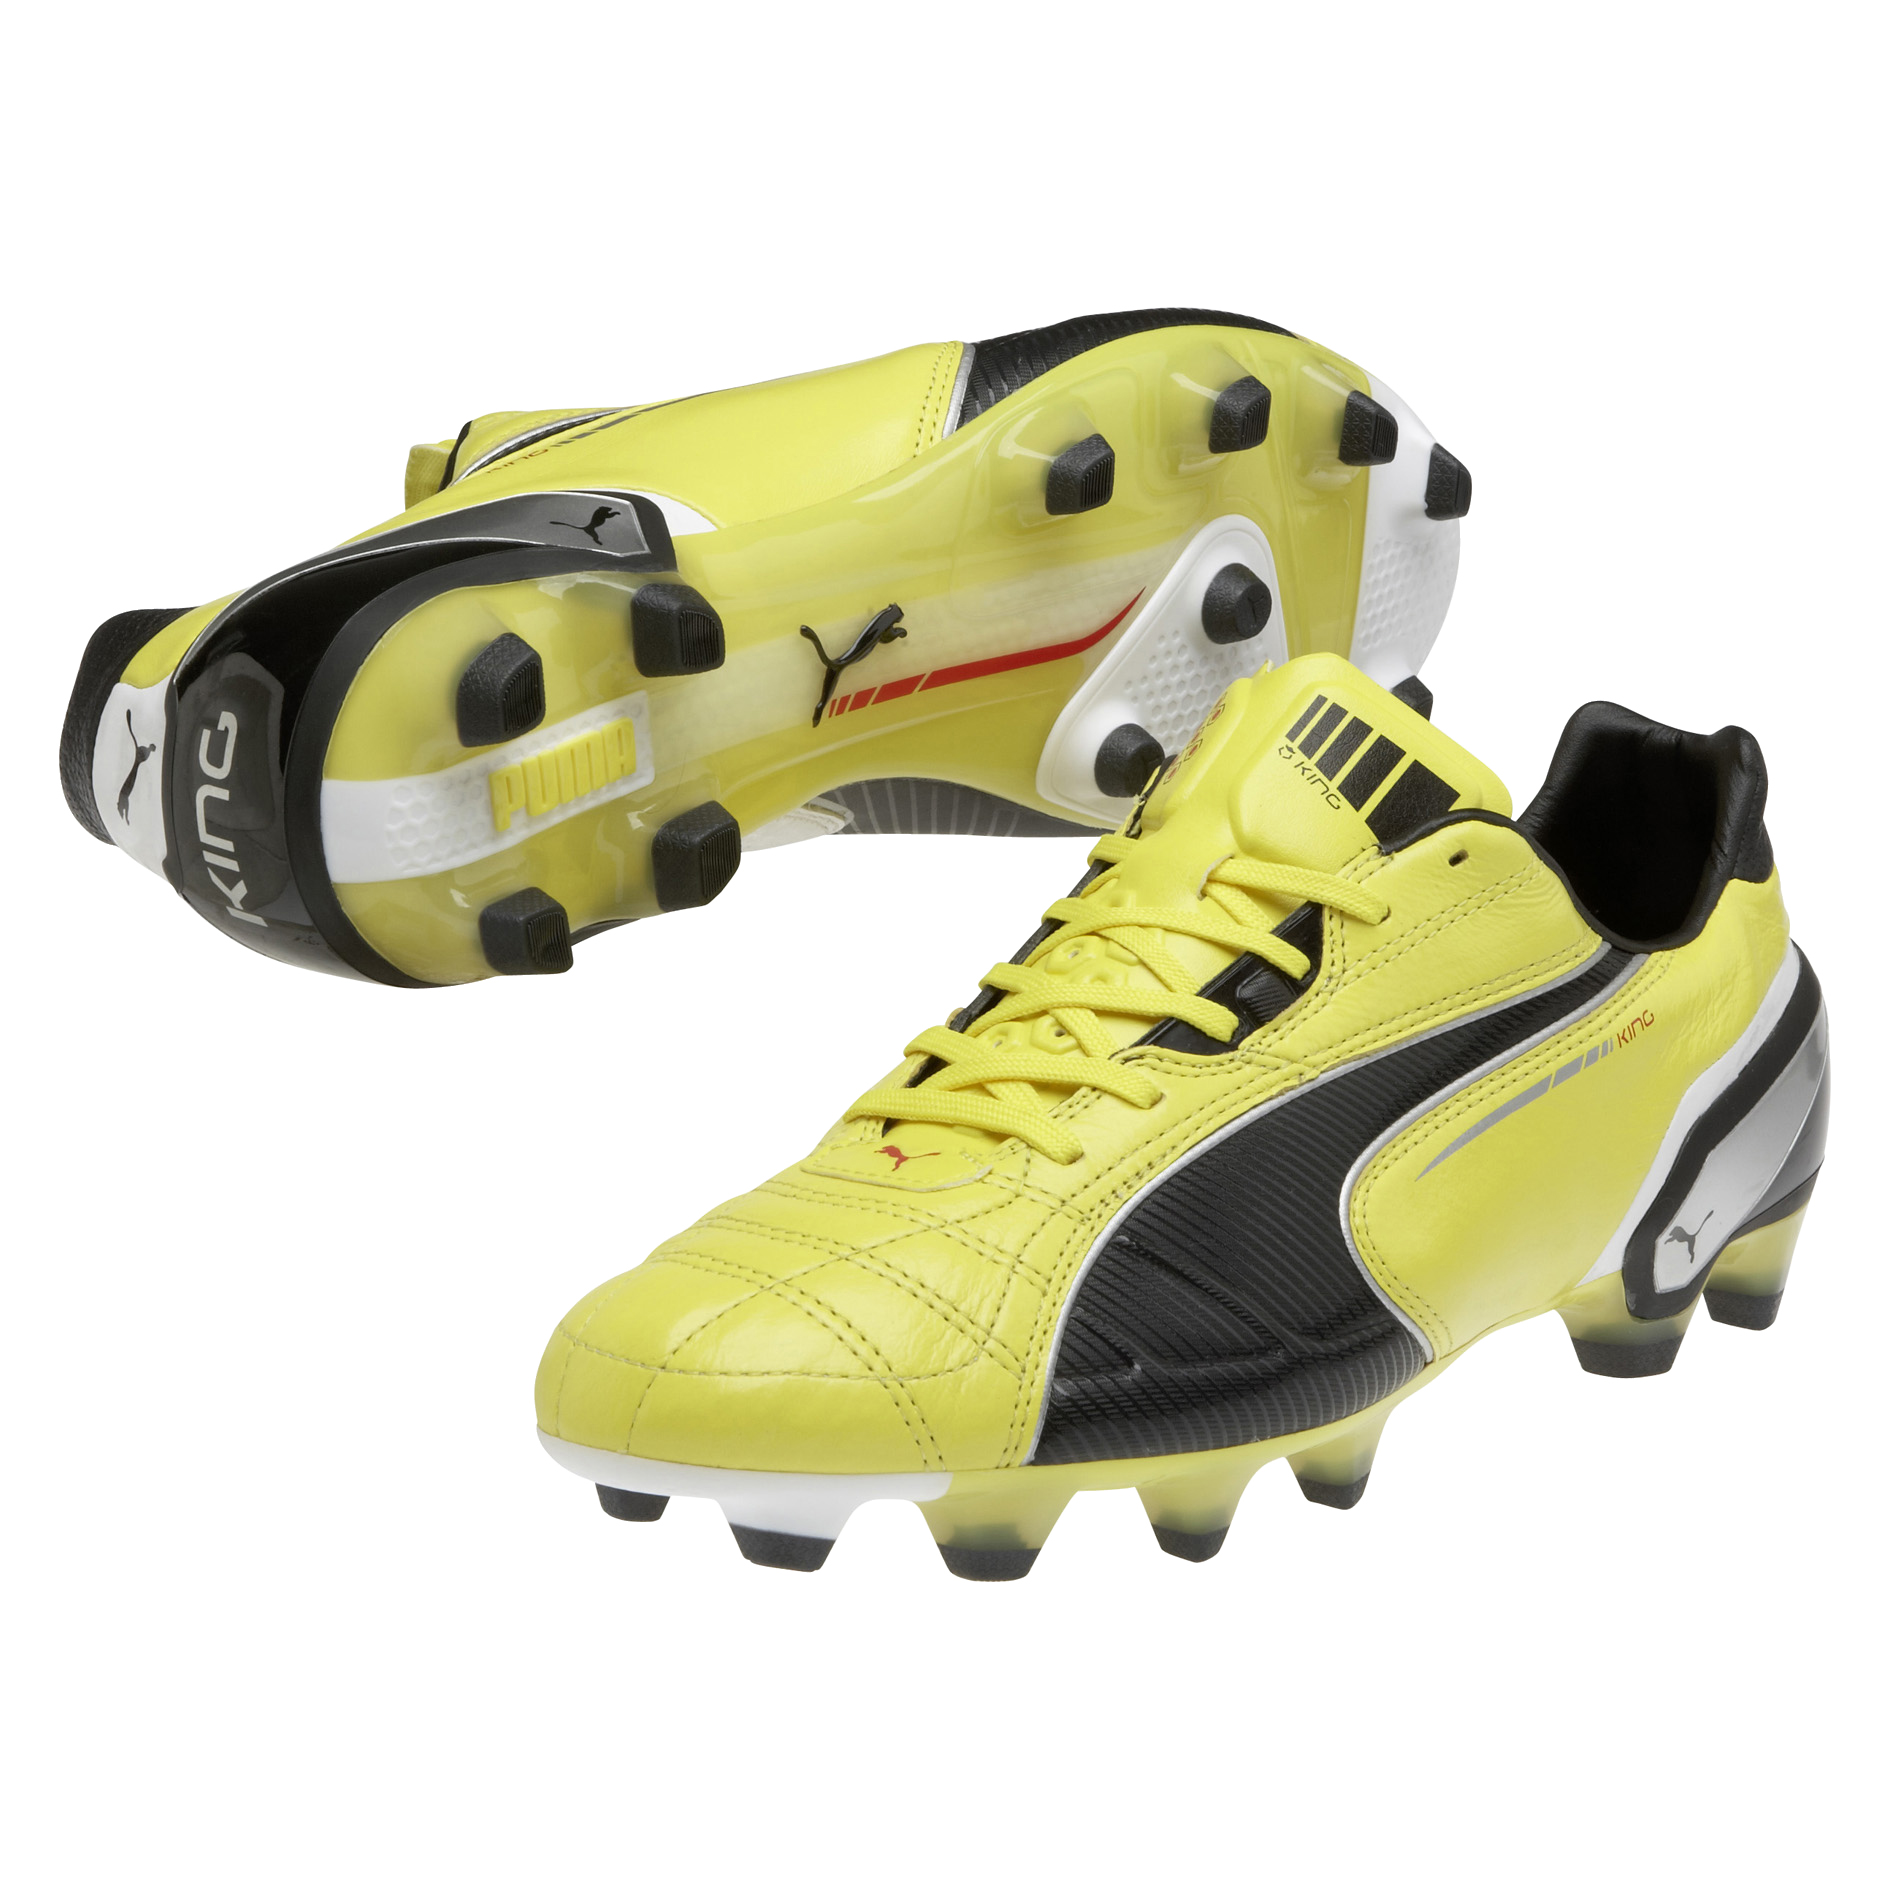 Puma King Firm Ground Football Boots - Blazing Yellow/Black/White